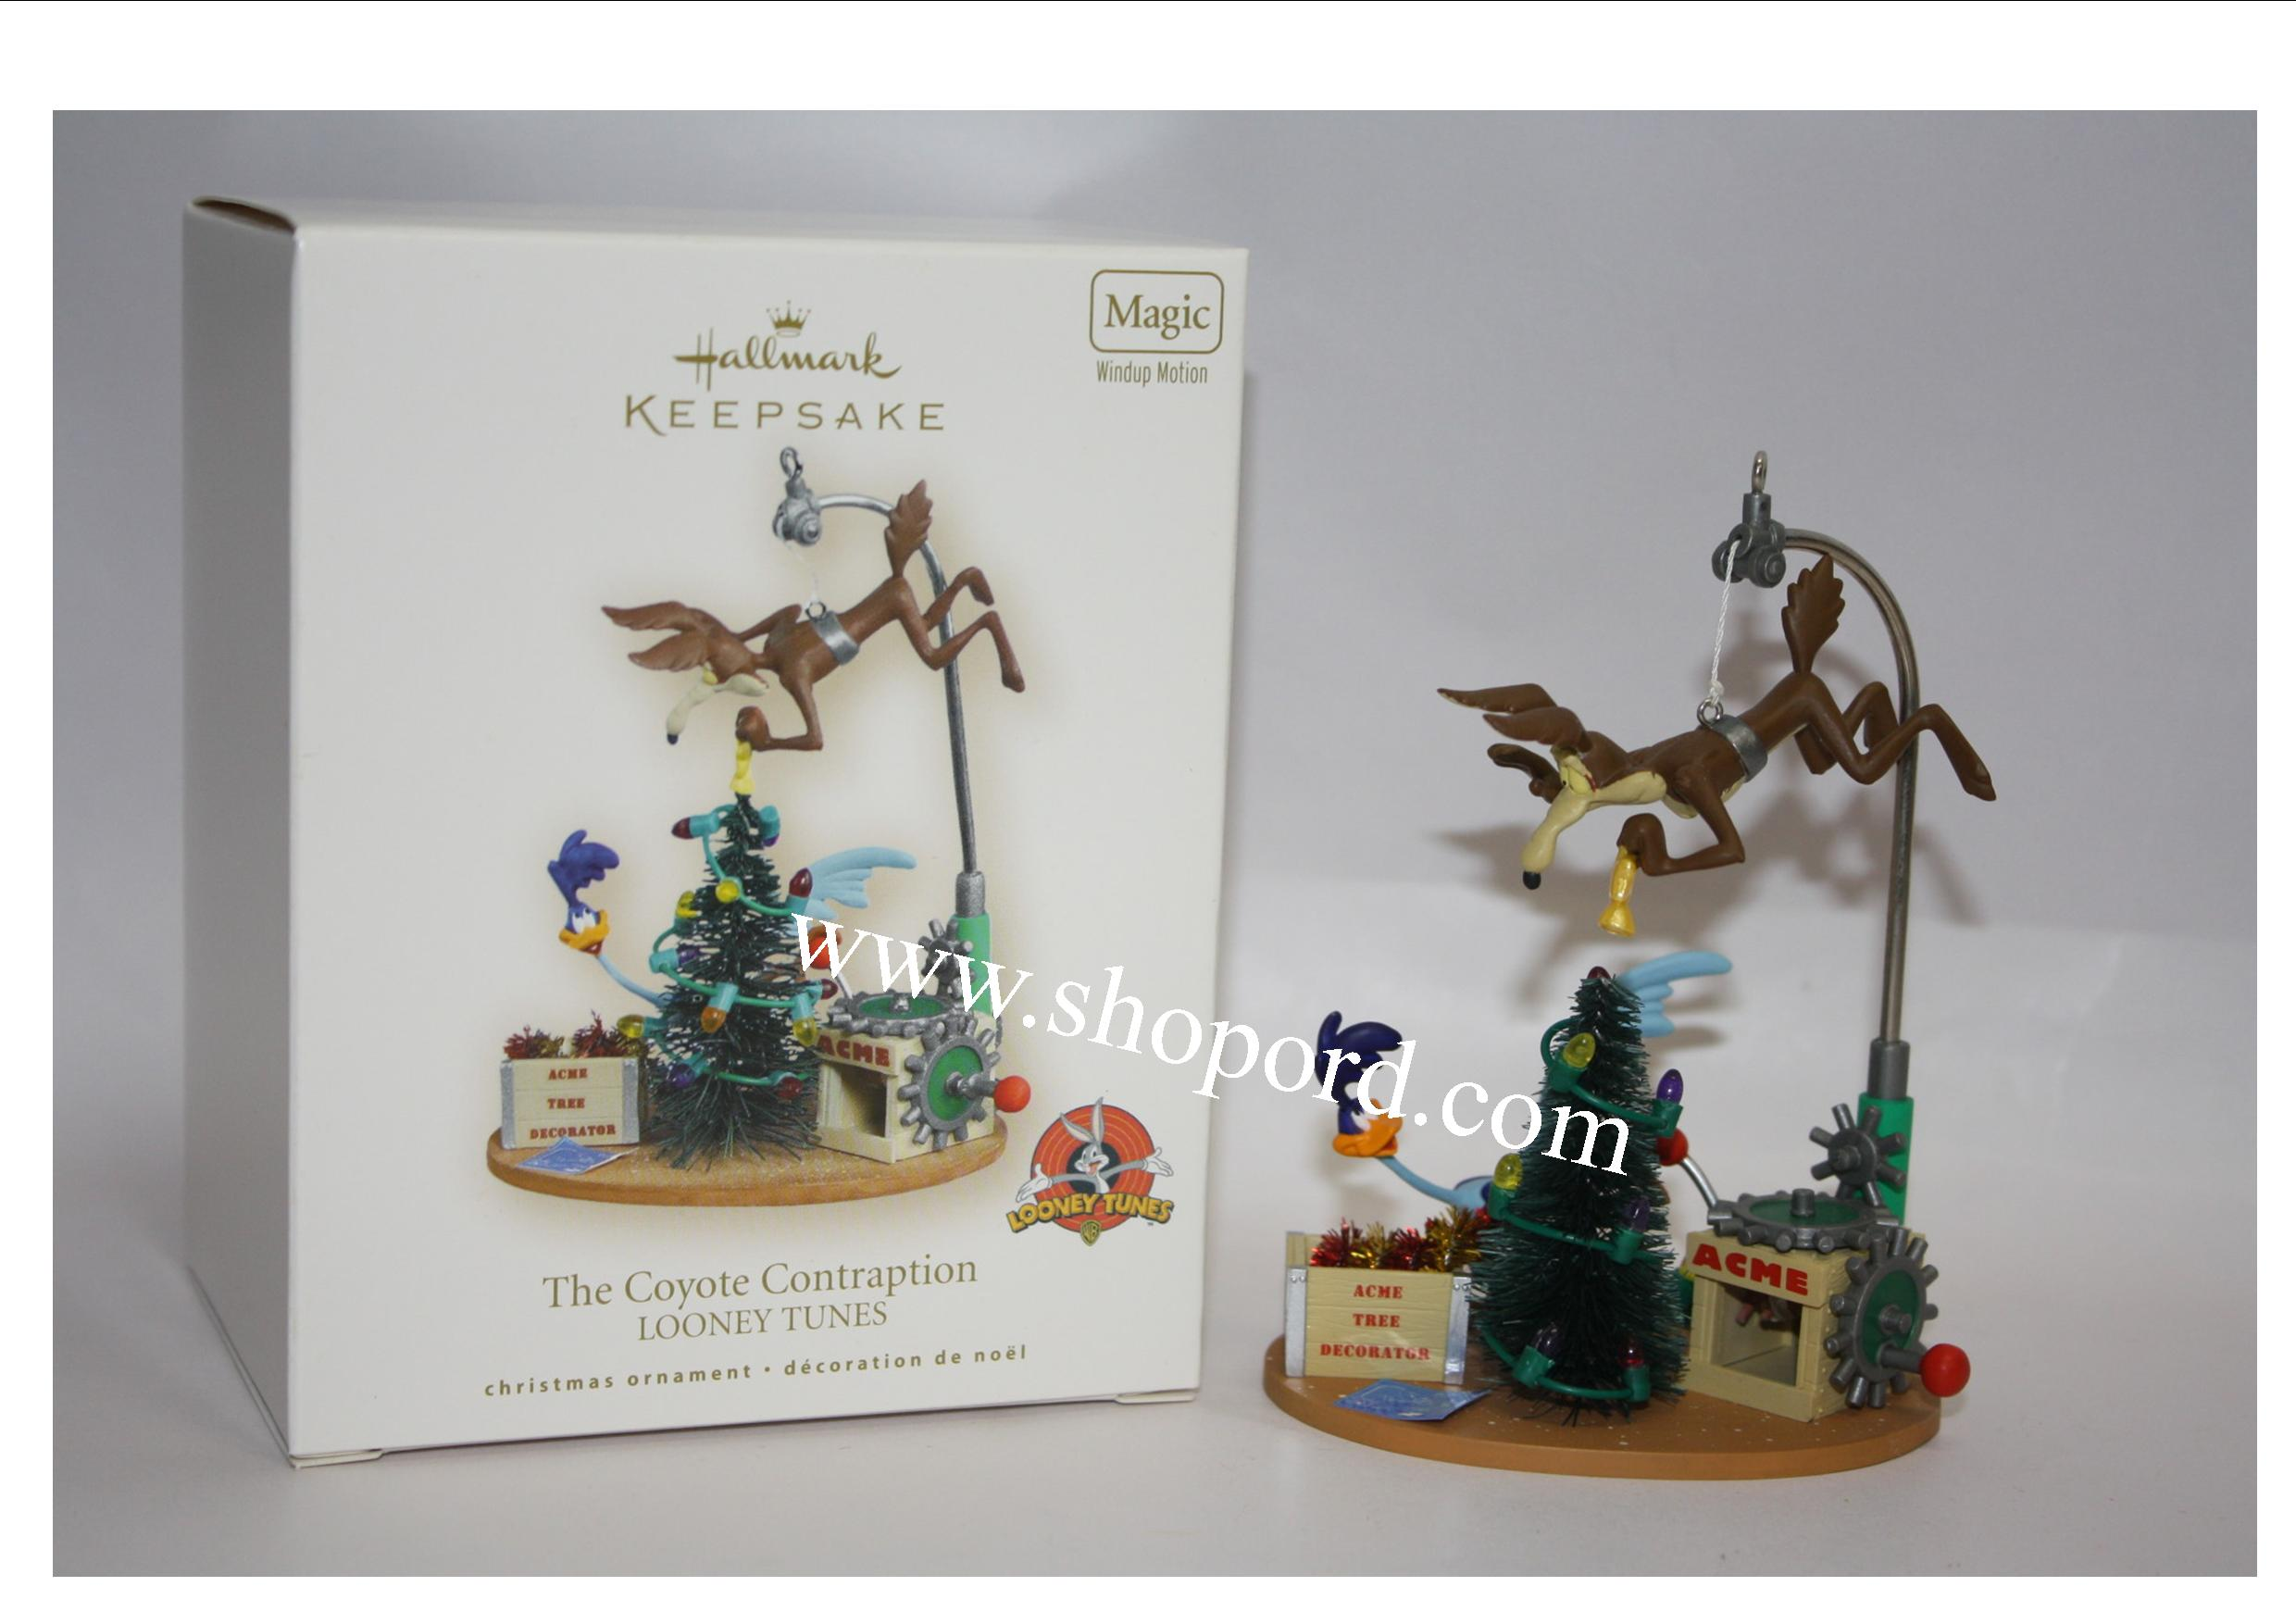 Hallmark 2007 The Coyote Contraption Looney Tunes Magic Ornament QXI4149